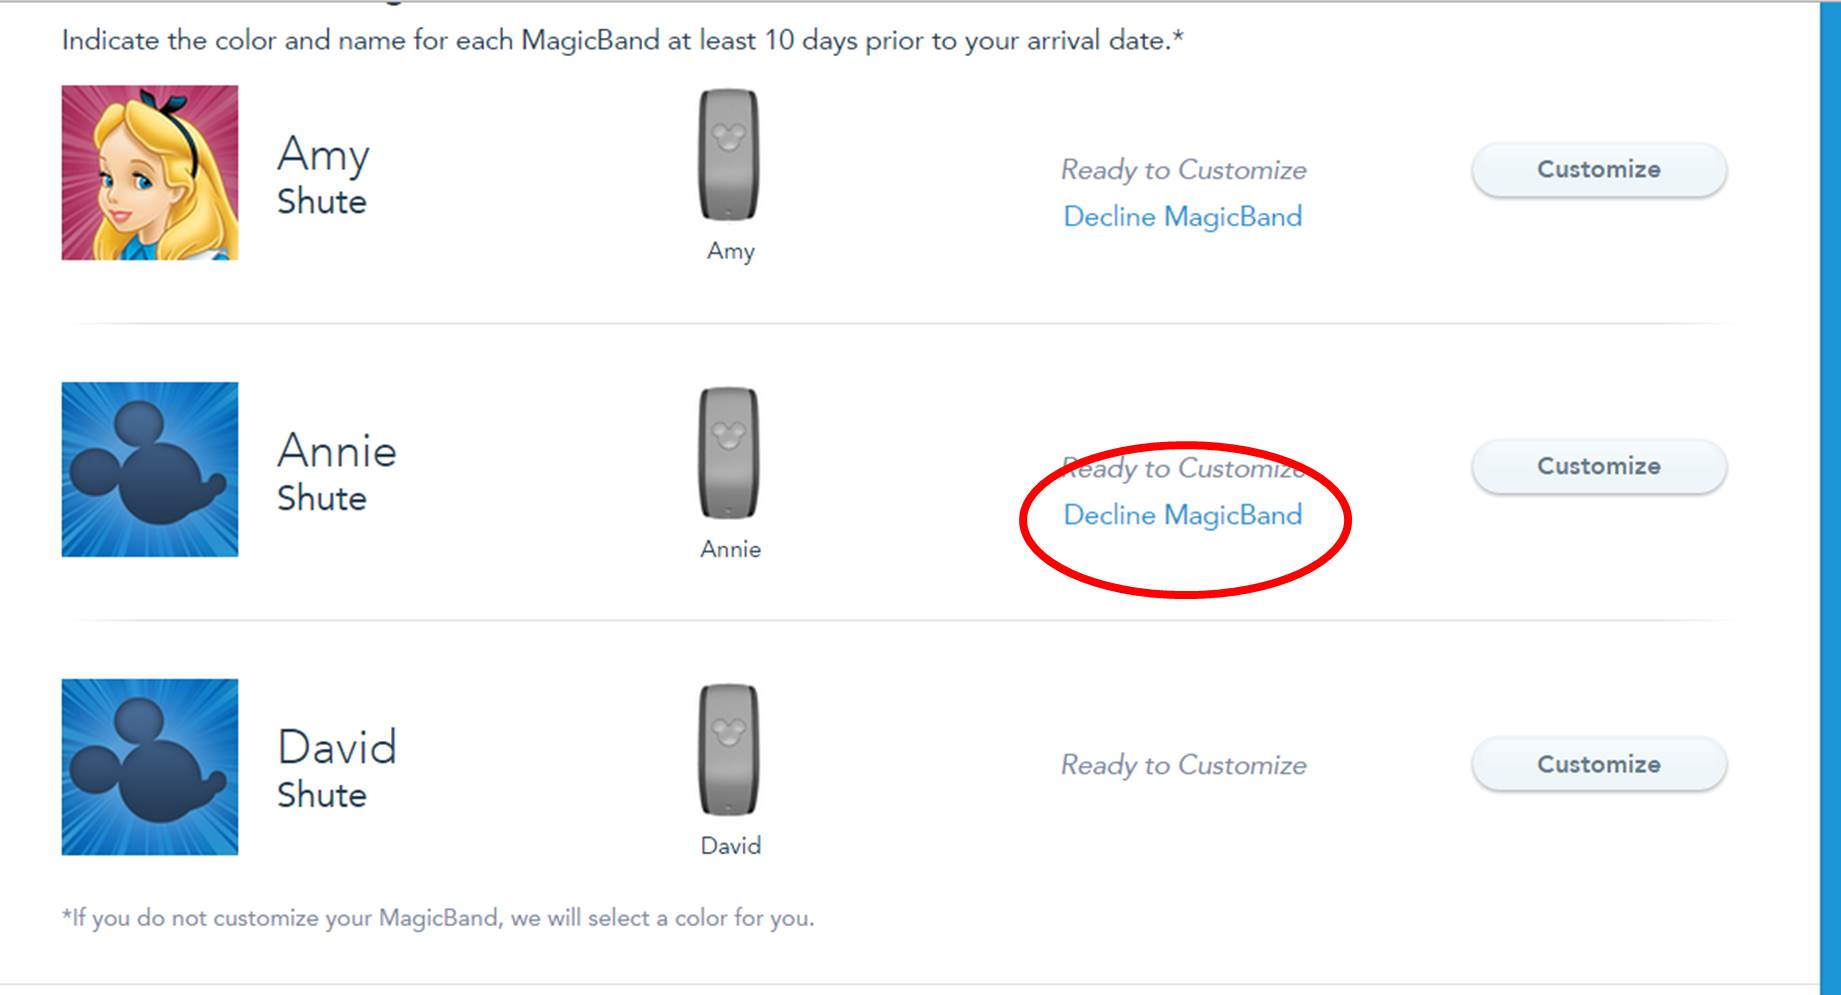 Declining a MagicBand Step 1 from yourfirstvisit.net